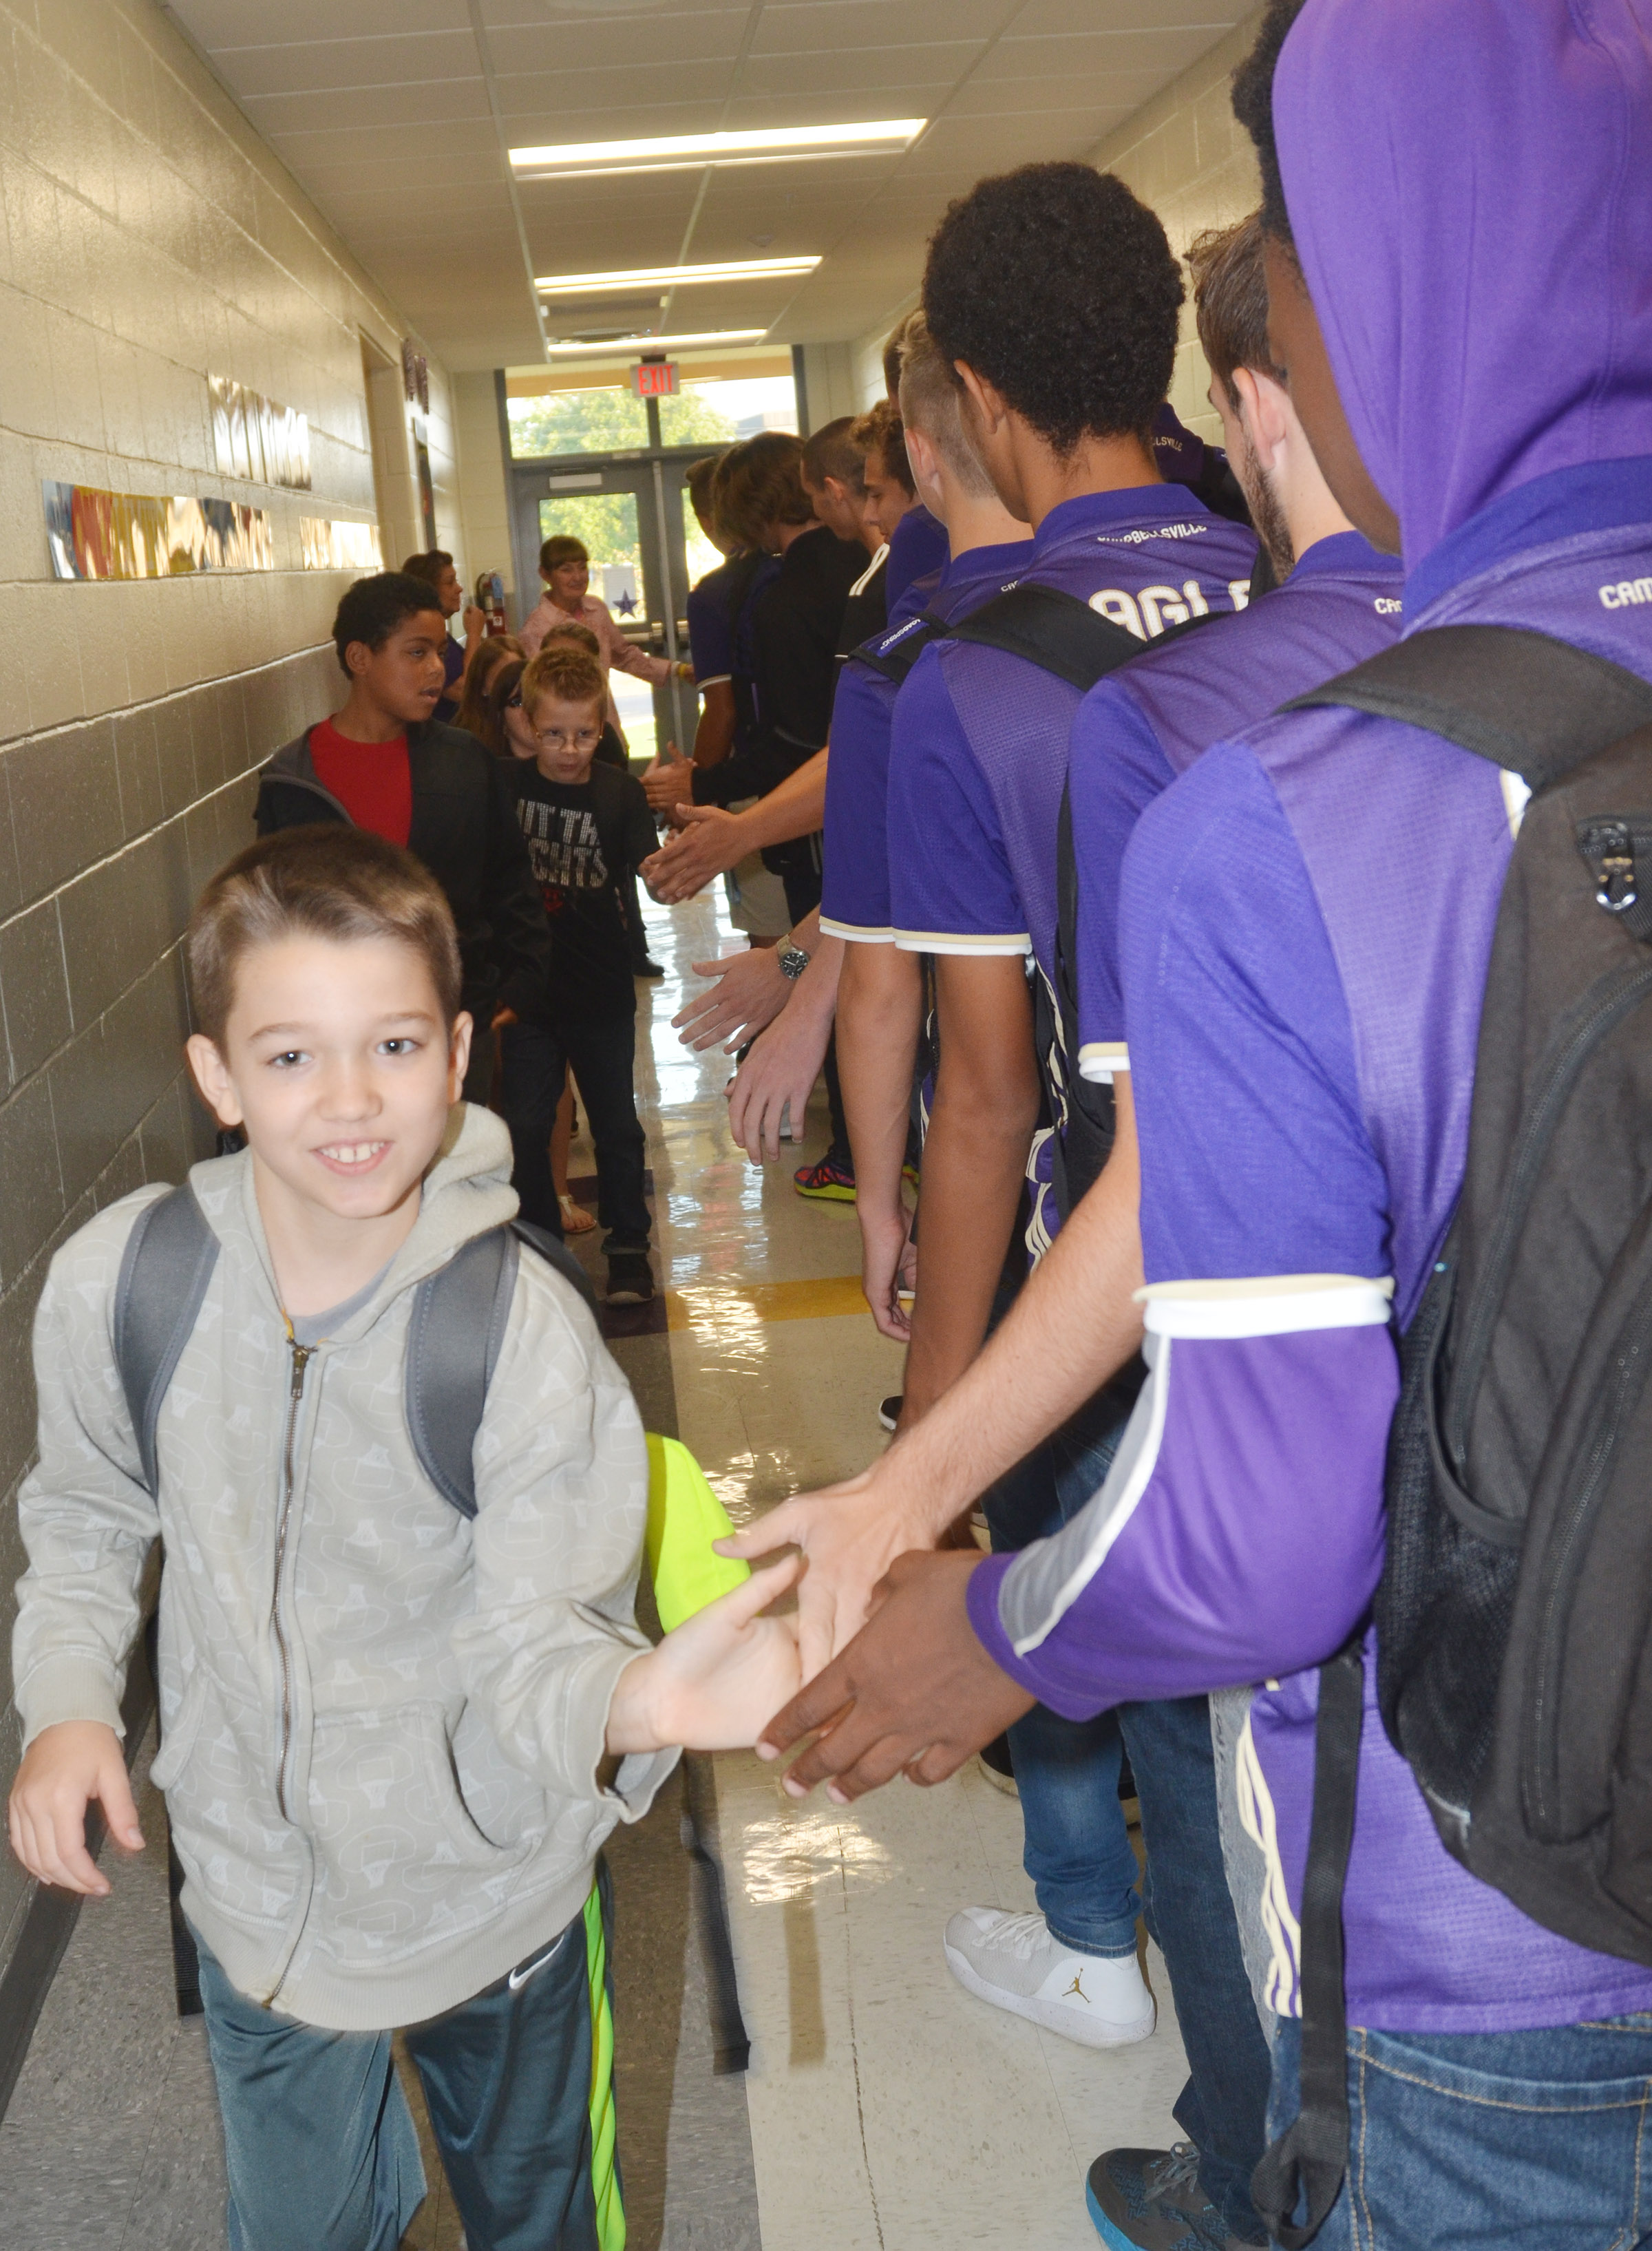 CES fourth-grader Landon Tucker high fives CHS soccer players.